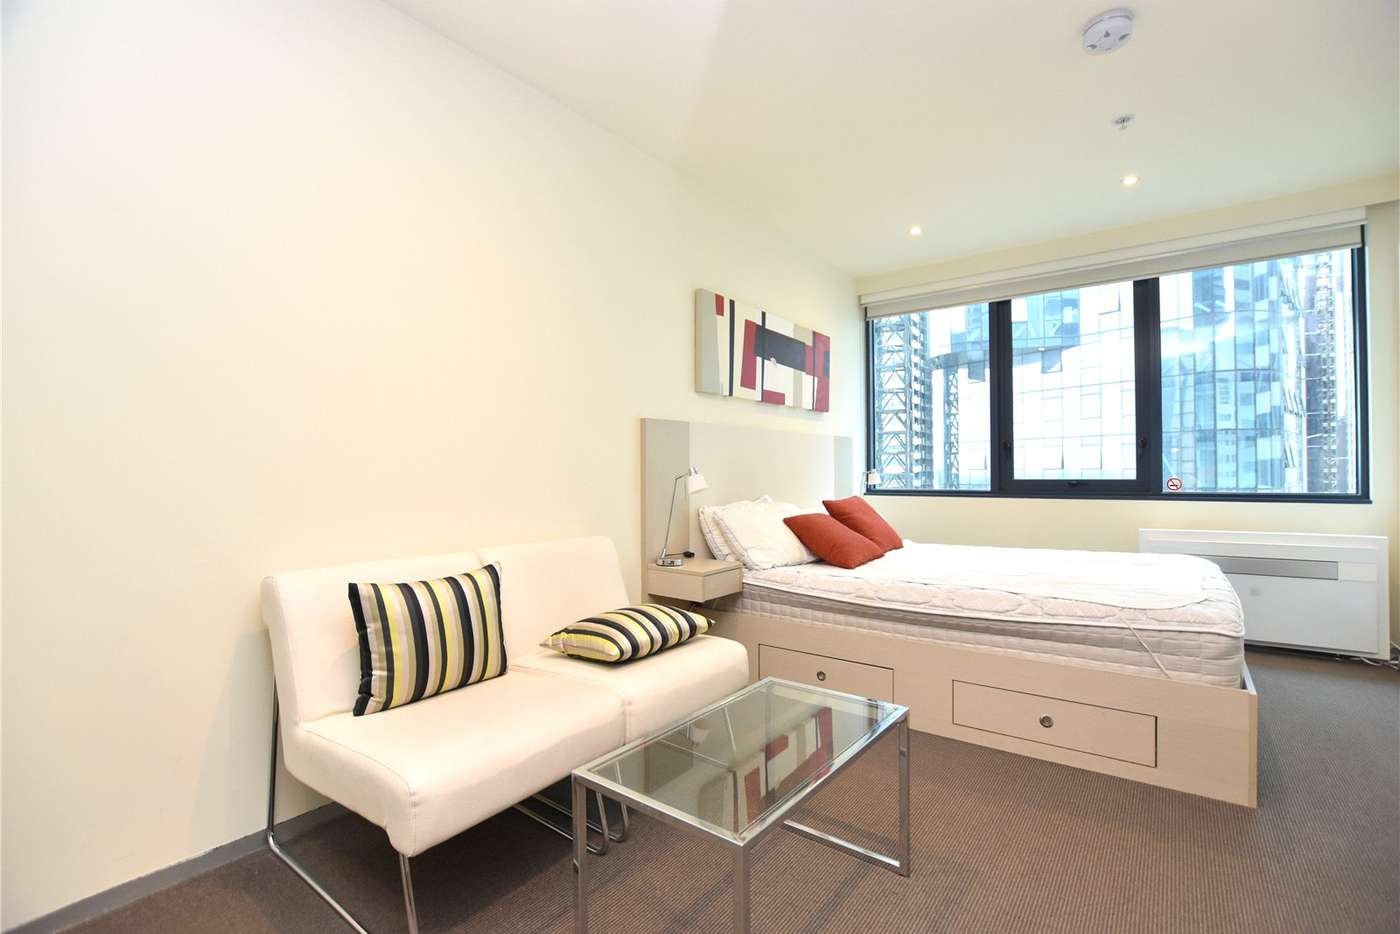 Main view of Homely studio listing, 1609/181 ABeckett Street, Melbourne VIC 3000